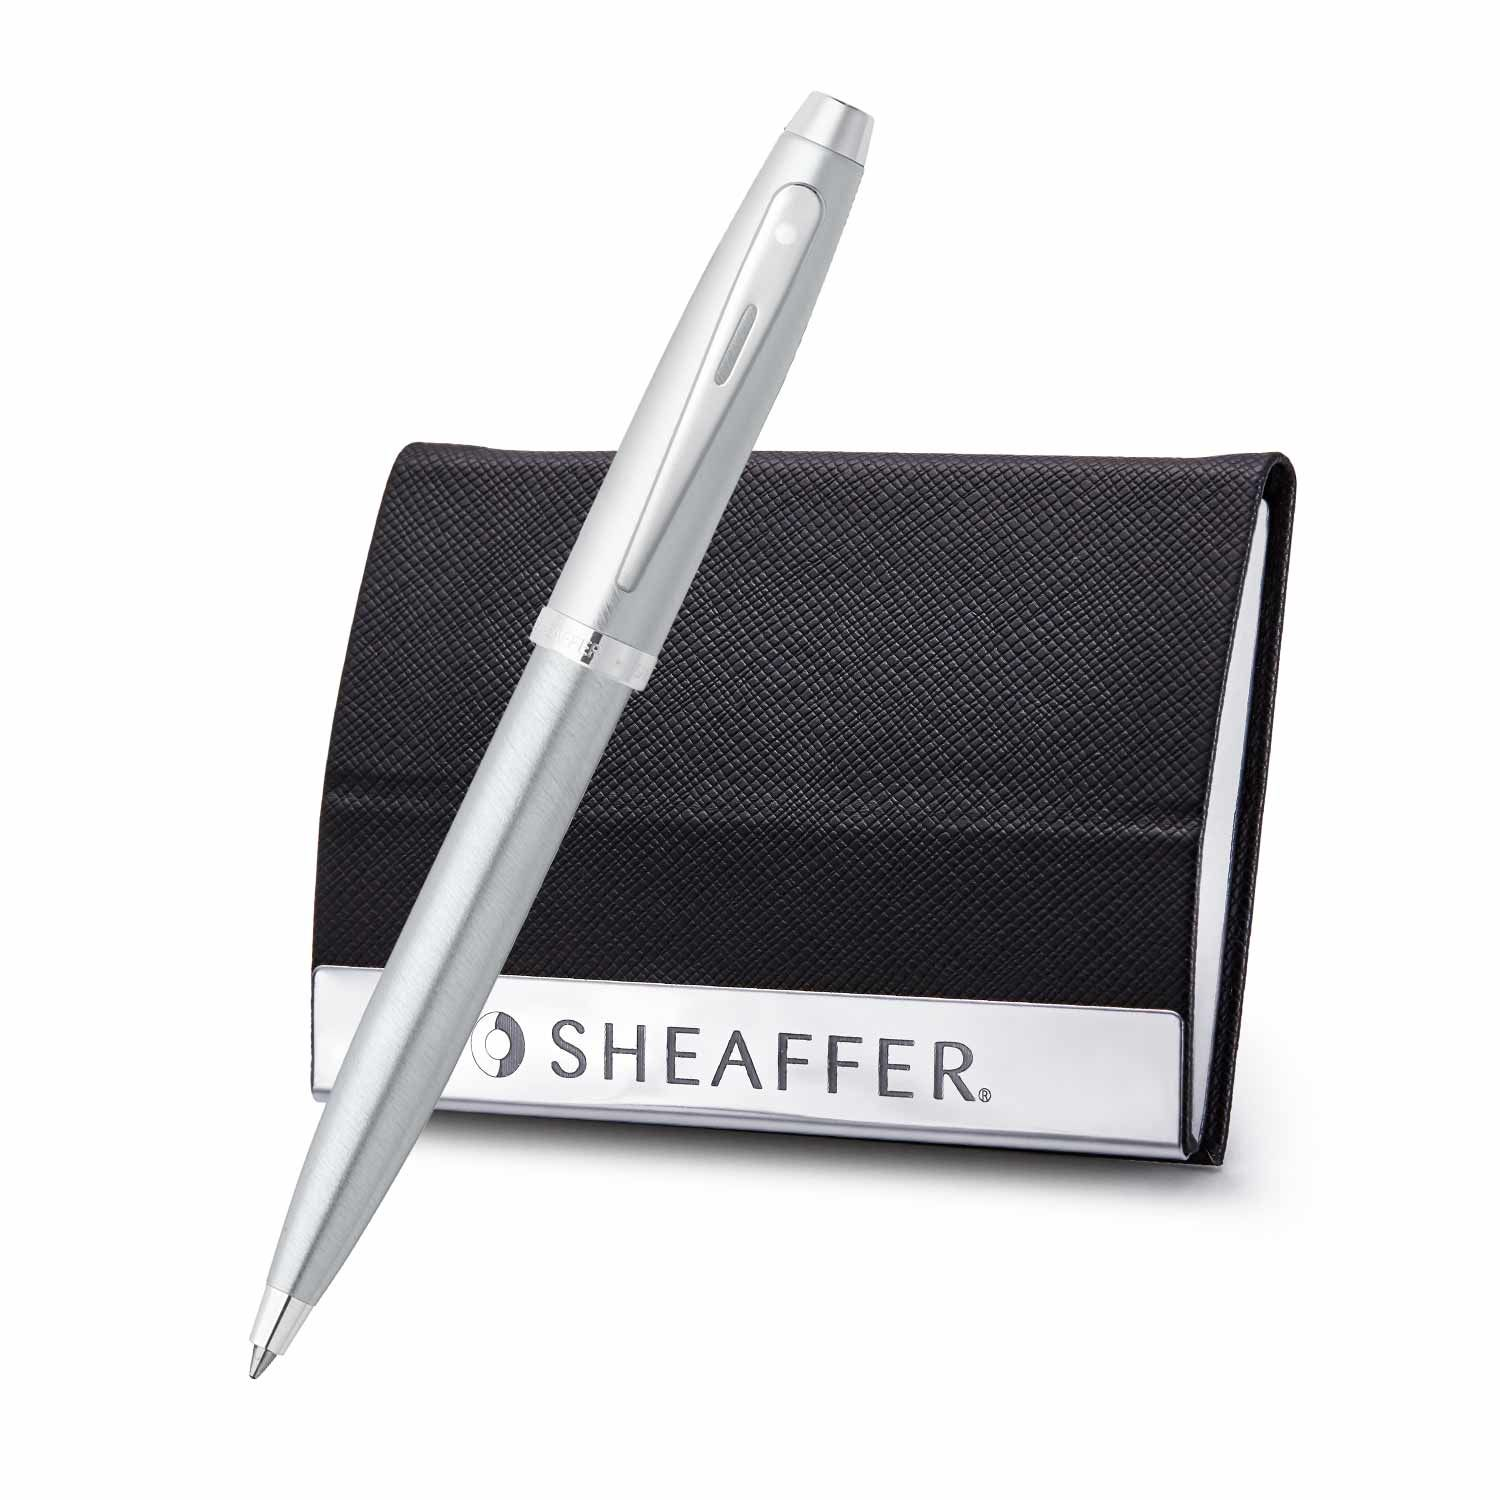 Sheaffer 9306 Ballpoint Pen With Business Card Holder Rs 1500